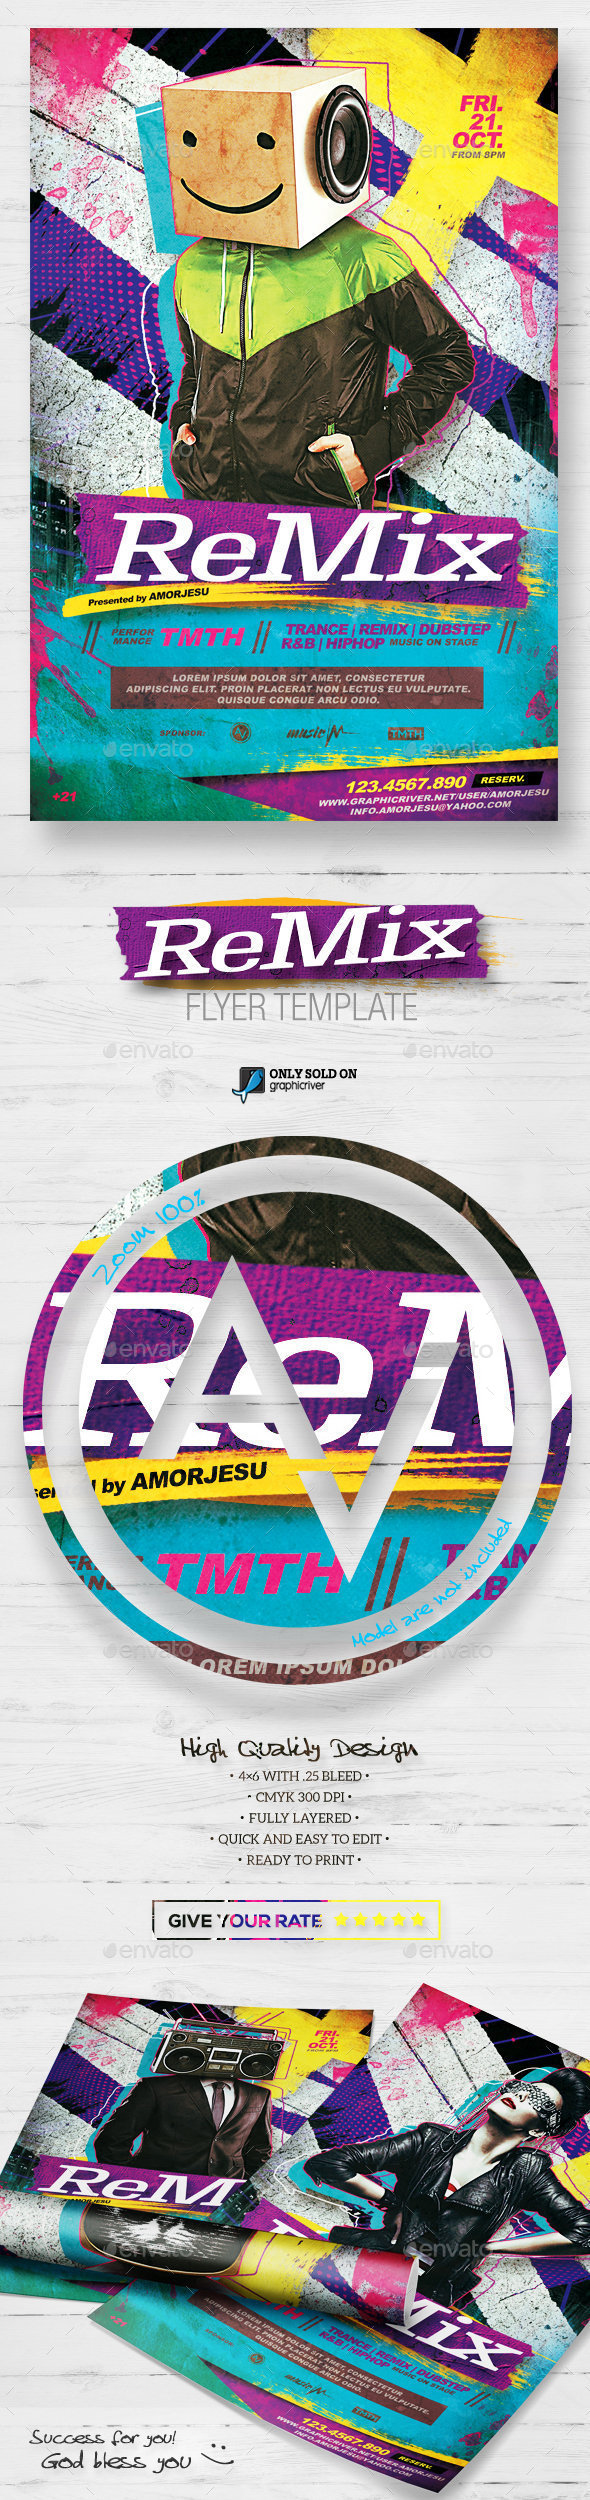 Remix Flyer Template V2 - Clubs & Parties Events